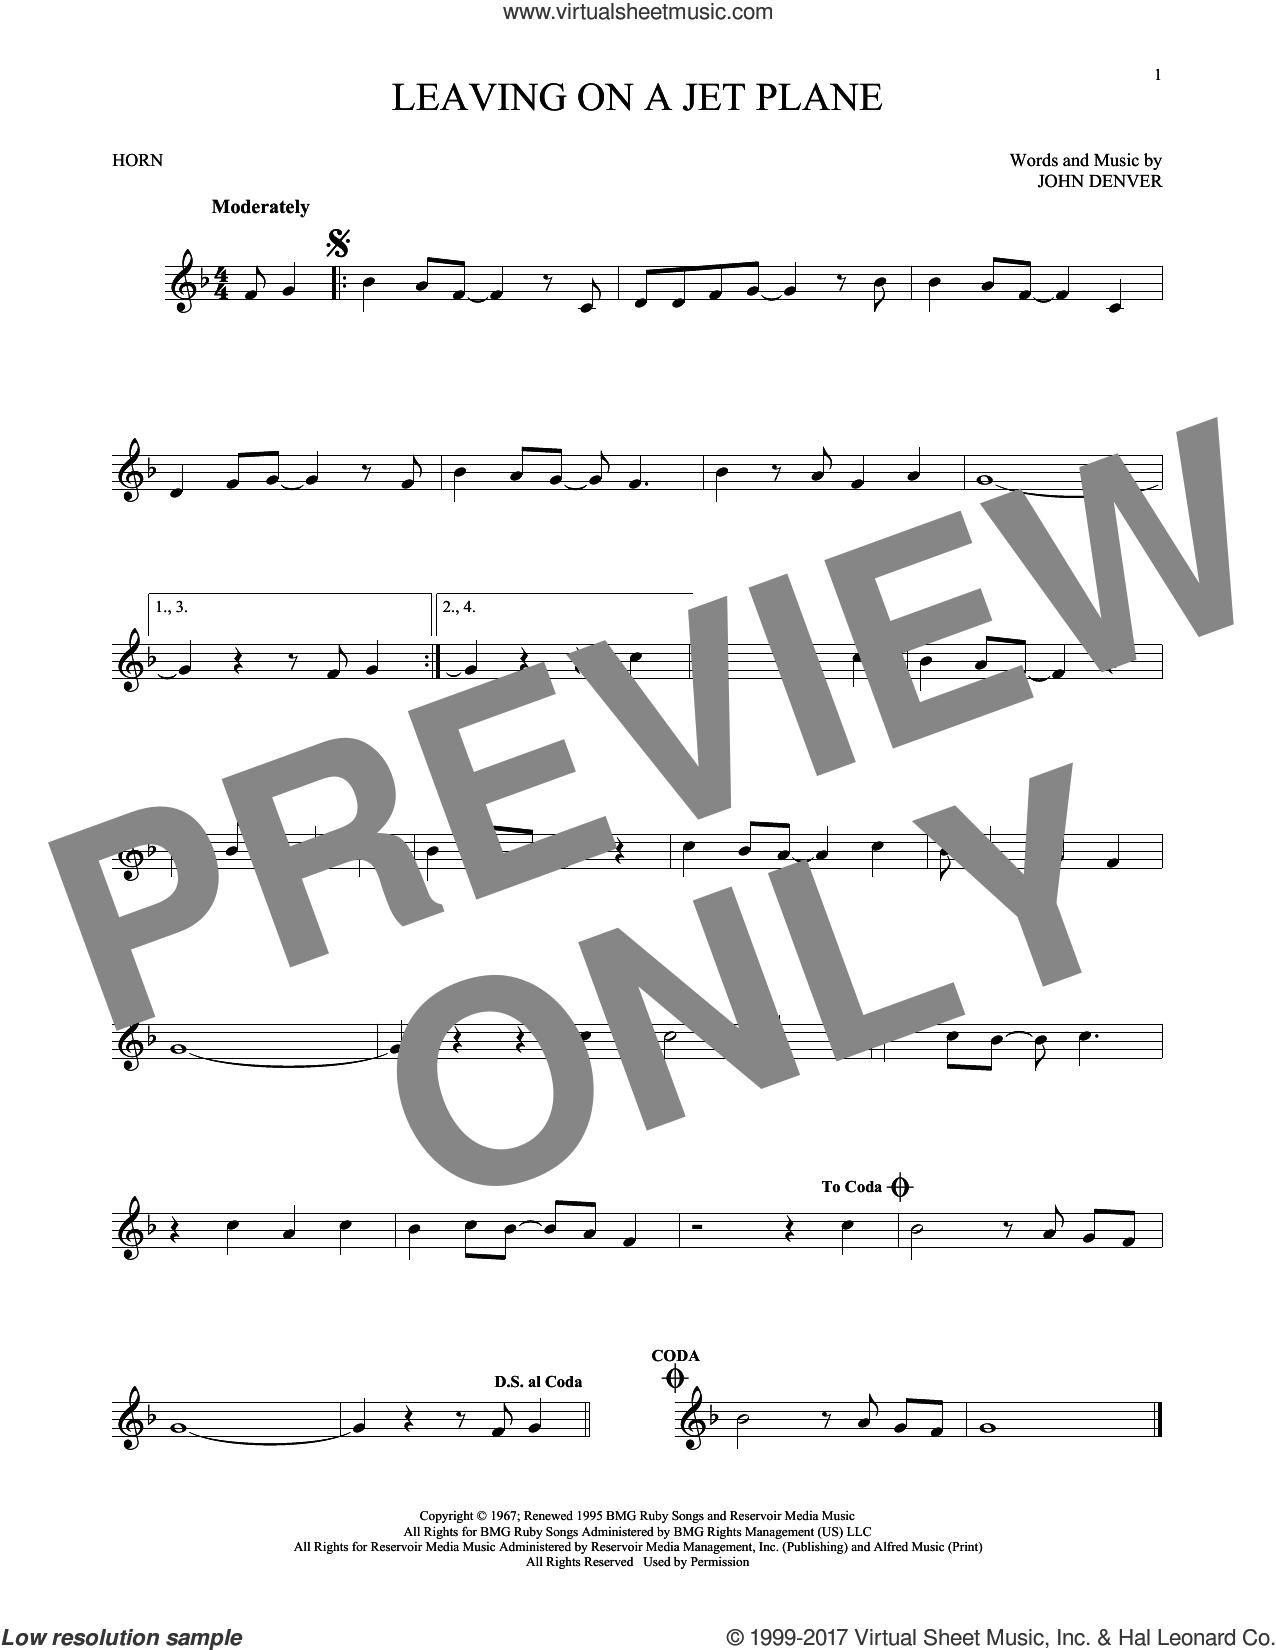 Leaving On A Jet Plane sheet music for horn solo by John Denver and Peter, Paul & Mary, intermediate skill level